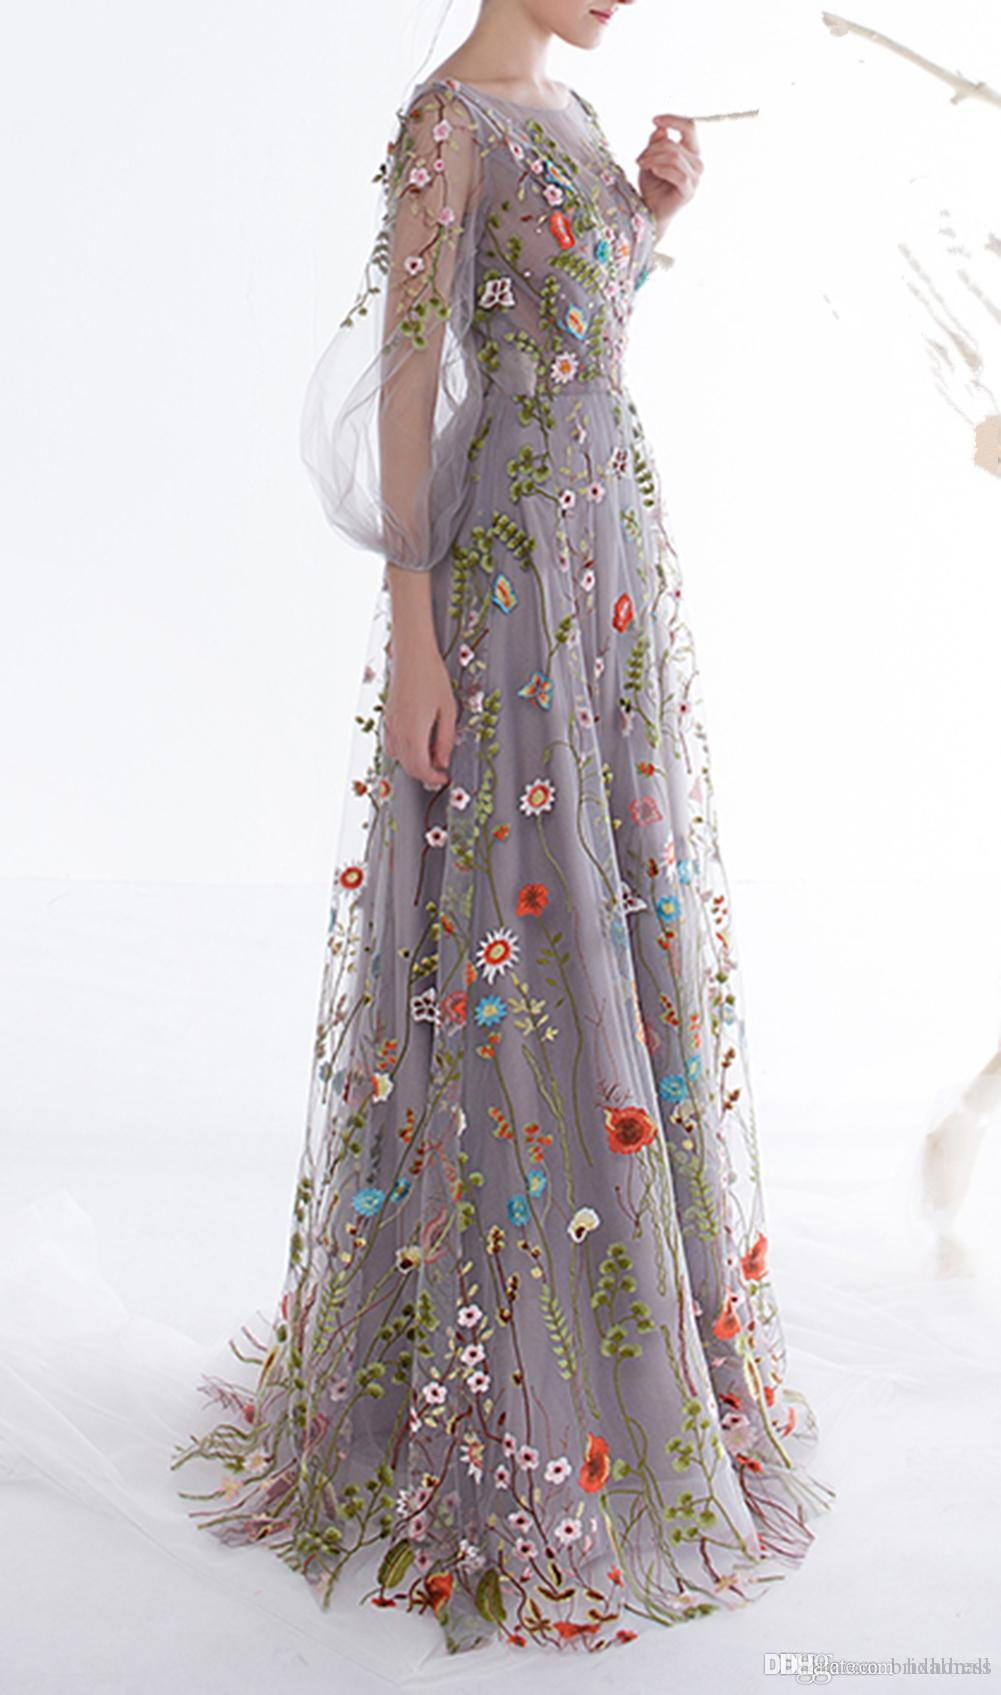 2018 New Women's Long Sleeves Prom Dresses Trendy Floral Embroidery A-line Evening Dresses Formal Party Gowns Pageant Dress Vestios De Novia